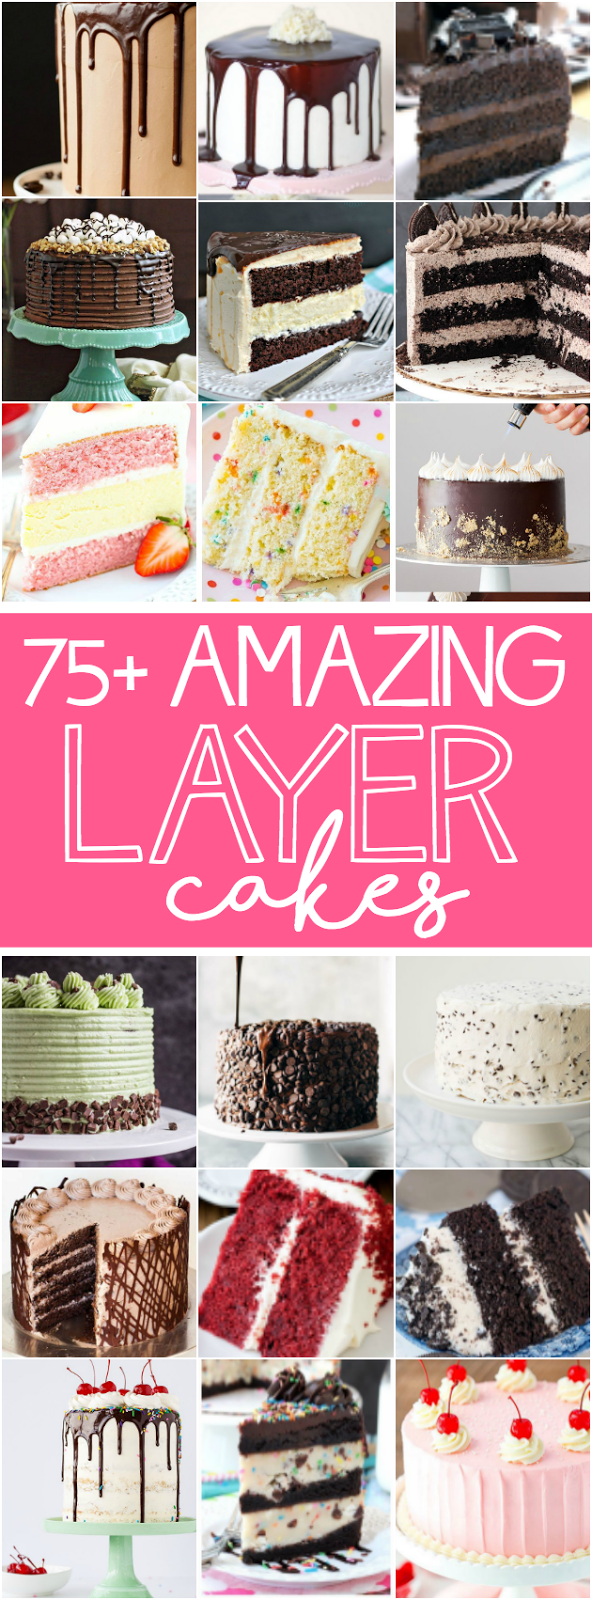 75+ Amazing Layer Cakes including Cherry Almond Cake, Mocha Chocolate Cake, Mudslide Cake, Peanut Butter Cup Layer Cake, and Banana Pudding Cake!